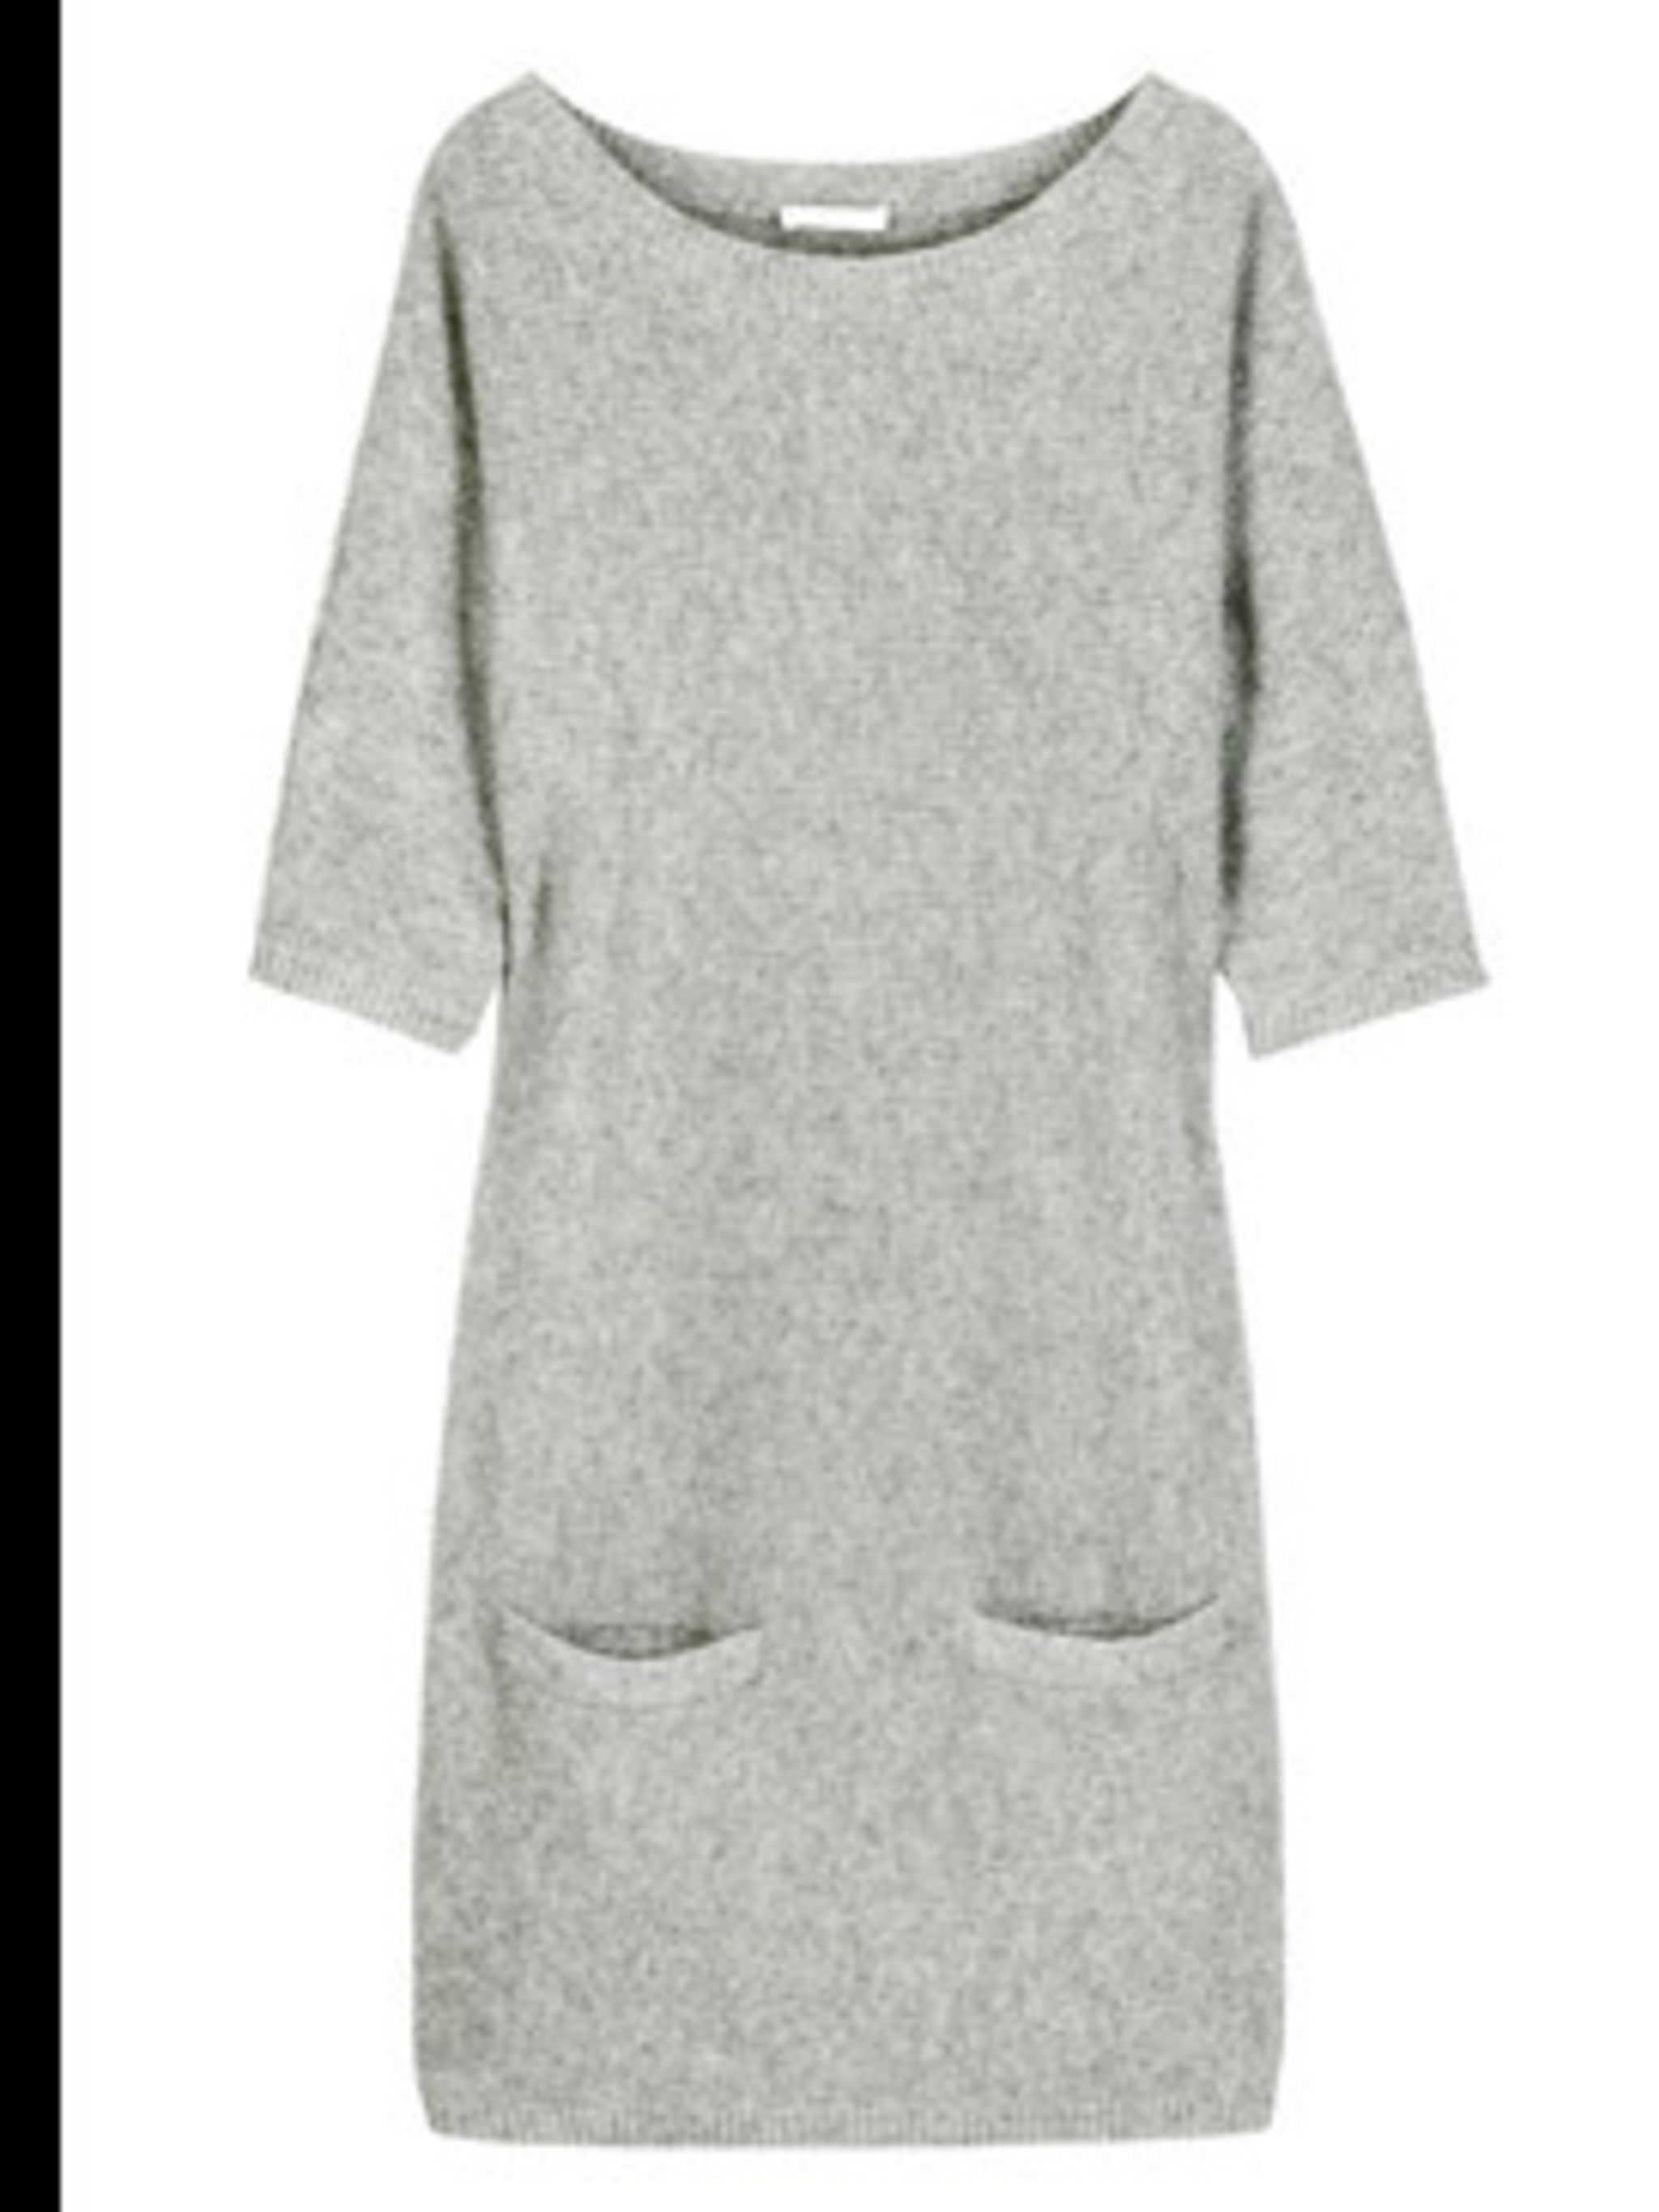 """<p>Cashmere shift dress £480 by Chloe, available at <a href=""""http://www.net-a-porter.com/product/46882"""">Net-A-Porter</a></p>"""